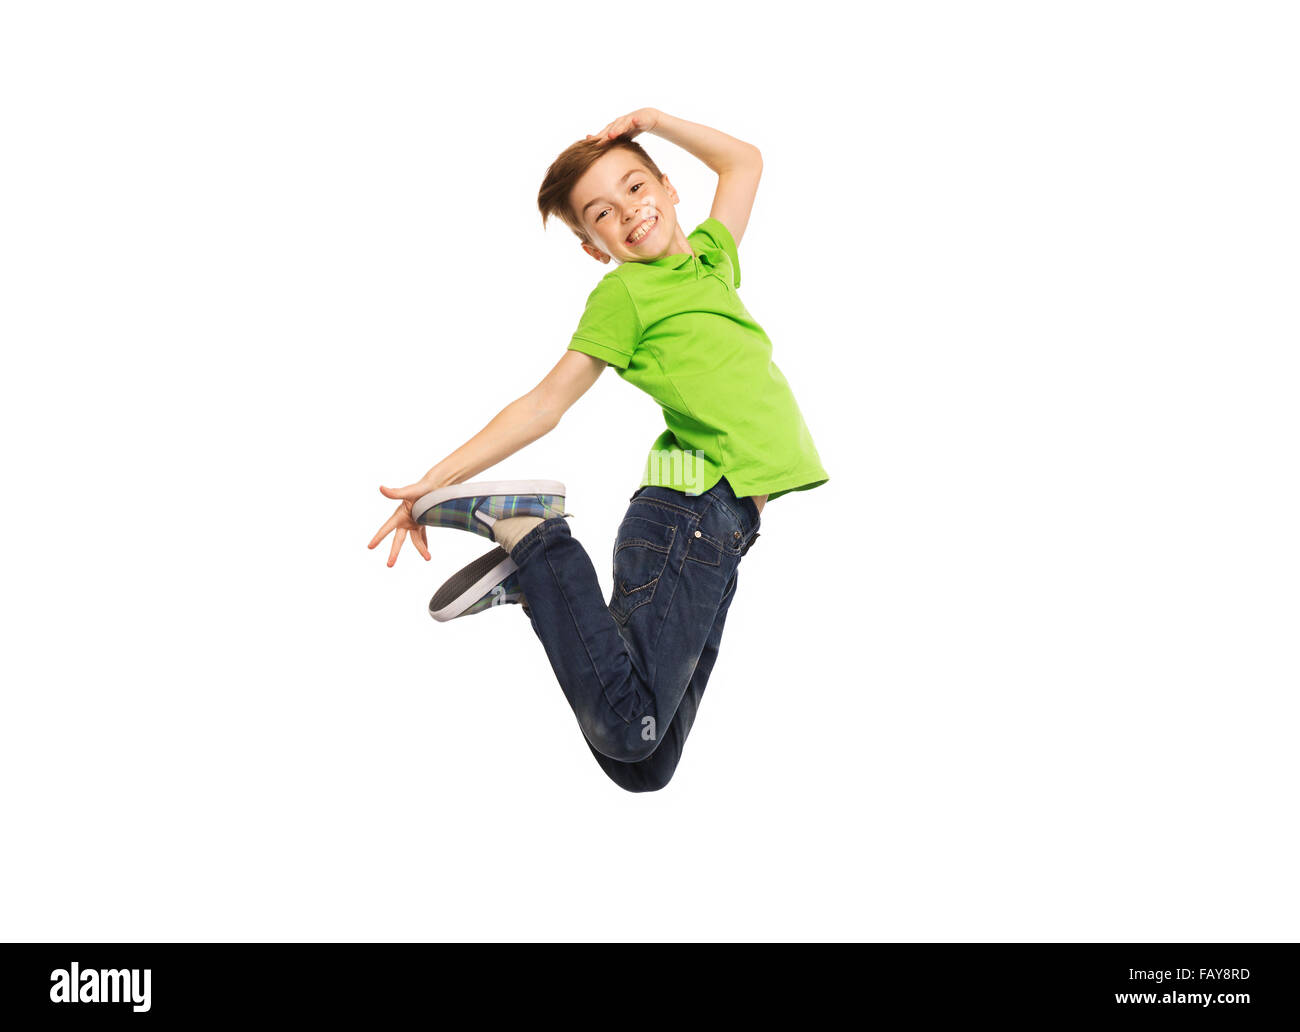 smiling boy jumping in air - Stock Image